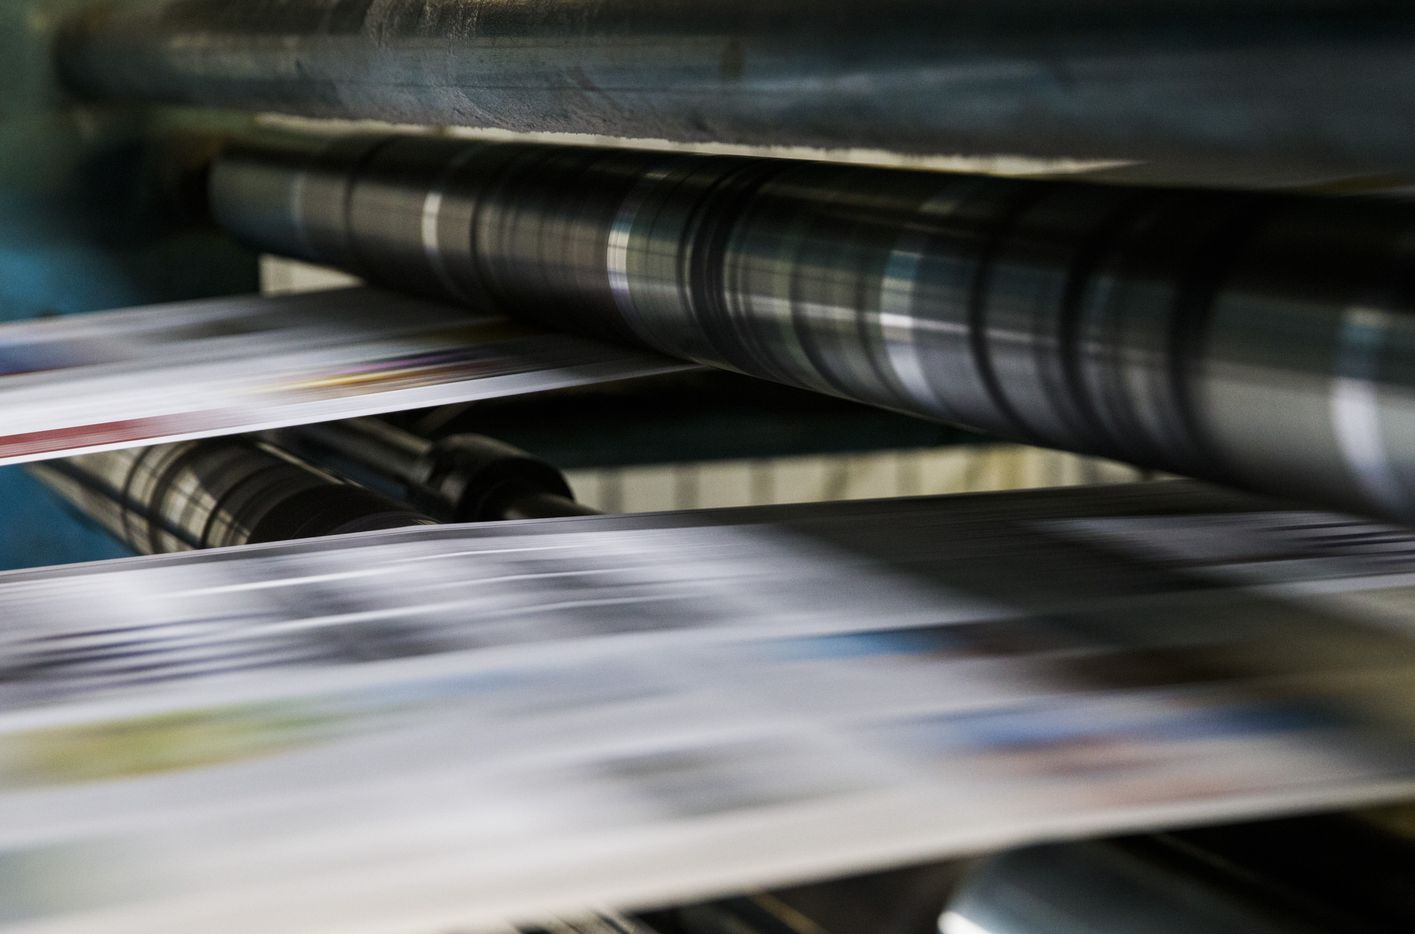 Printing presses roll on Thursday, April 6, 2017 at The Dallas Morning News' North Plant in Plano. (Ashley Landis/The Dallas Morning News)